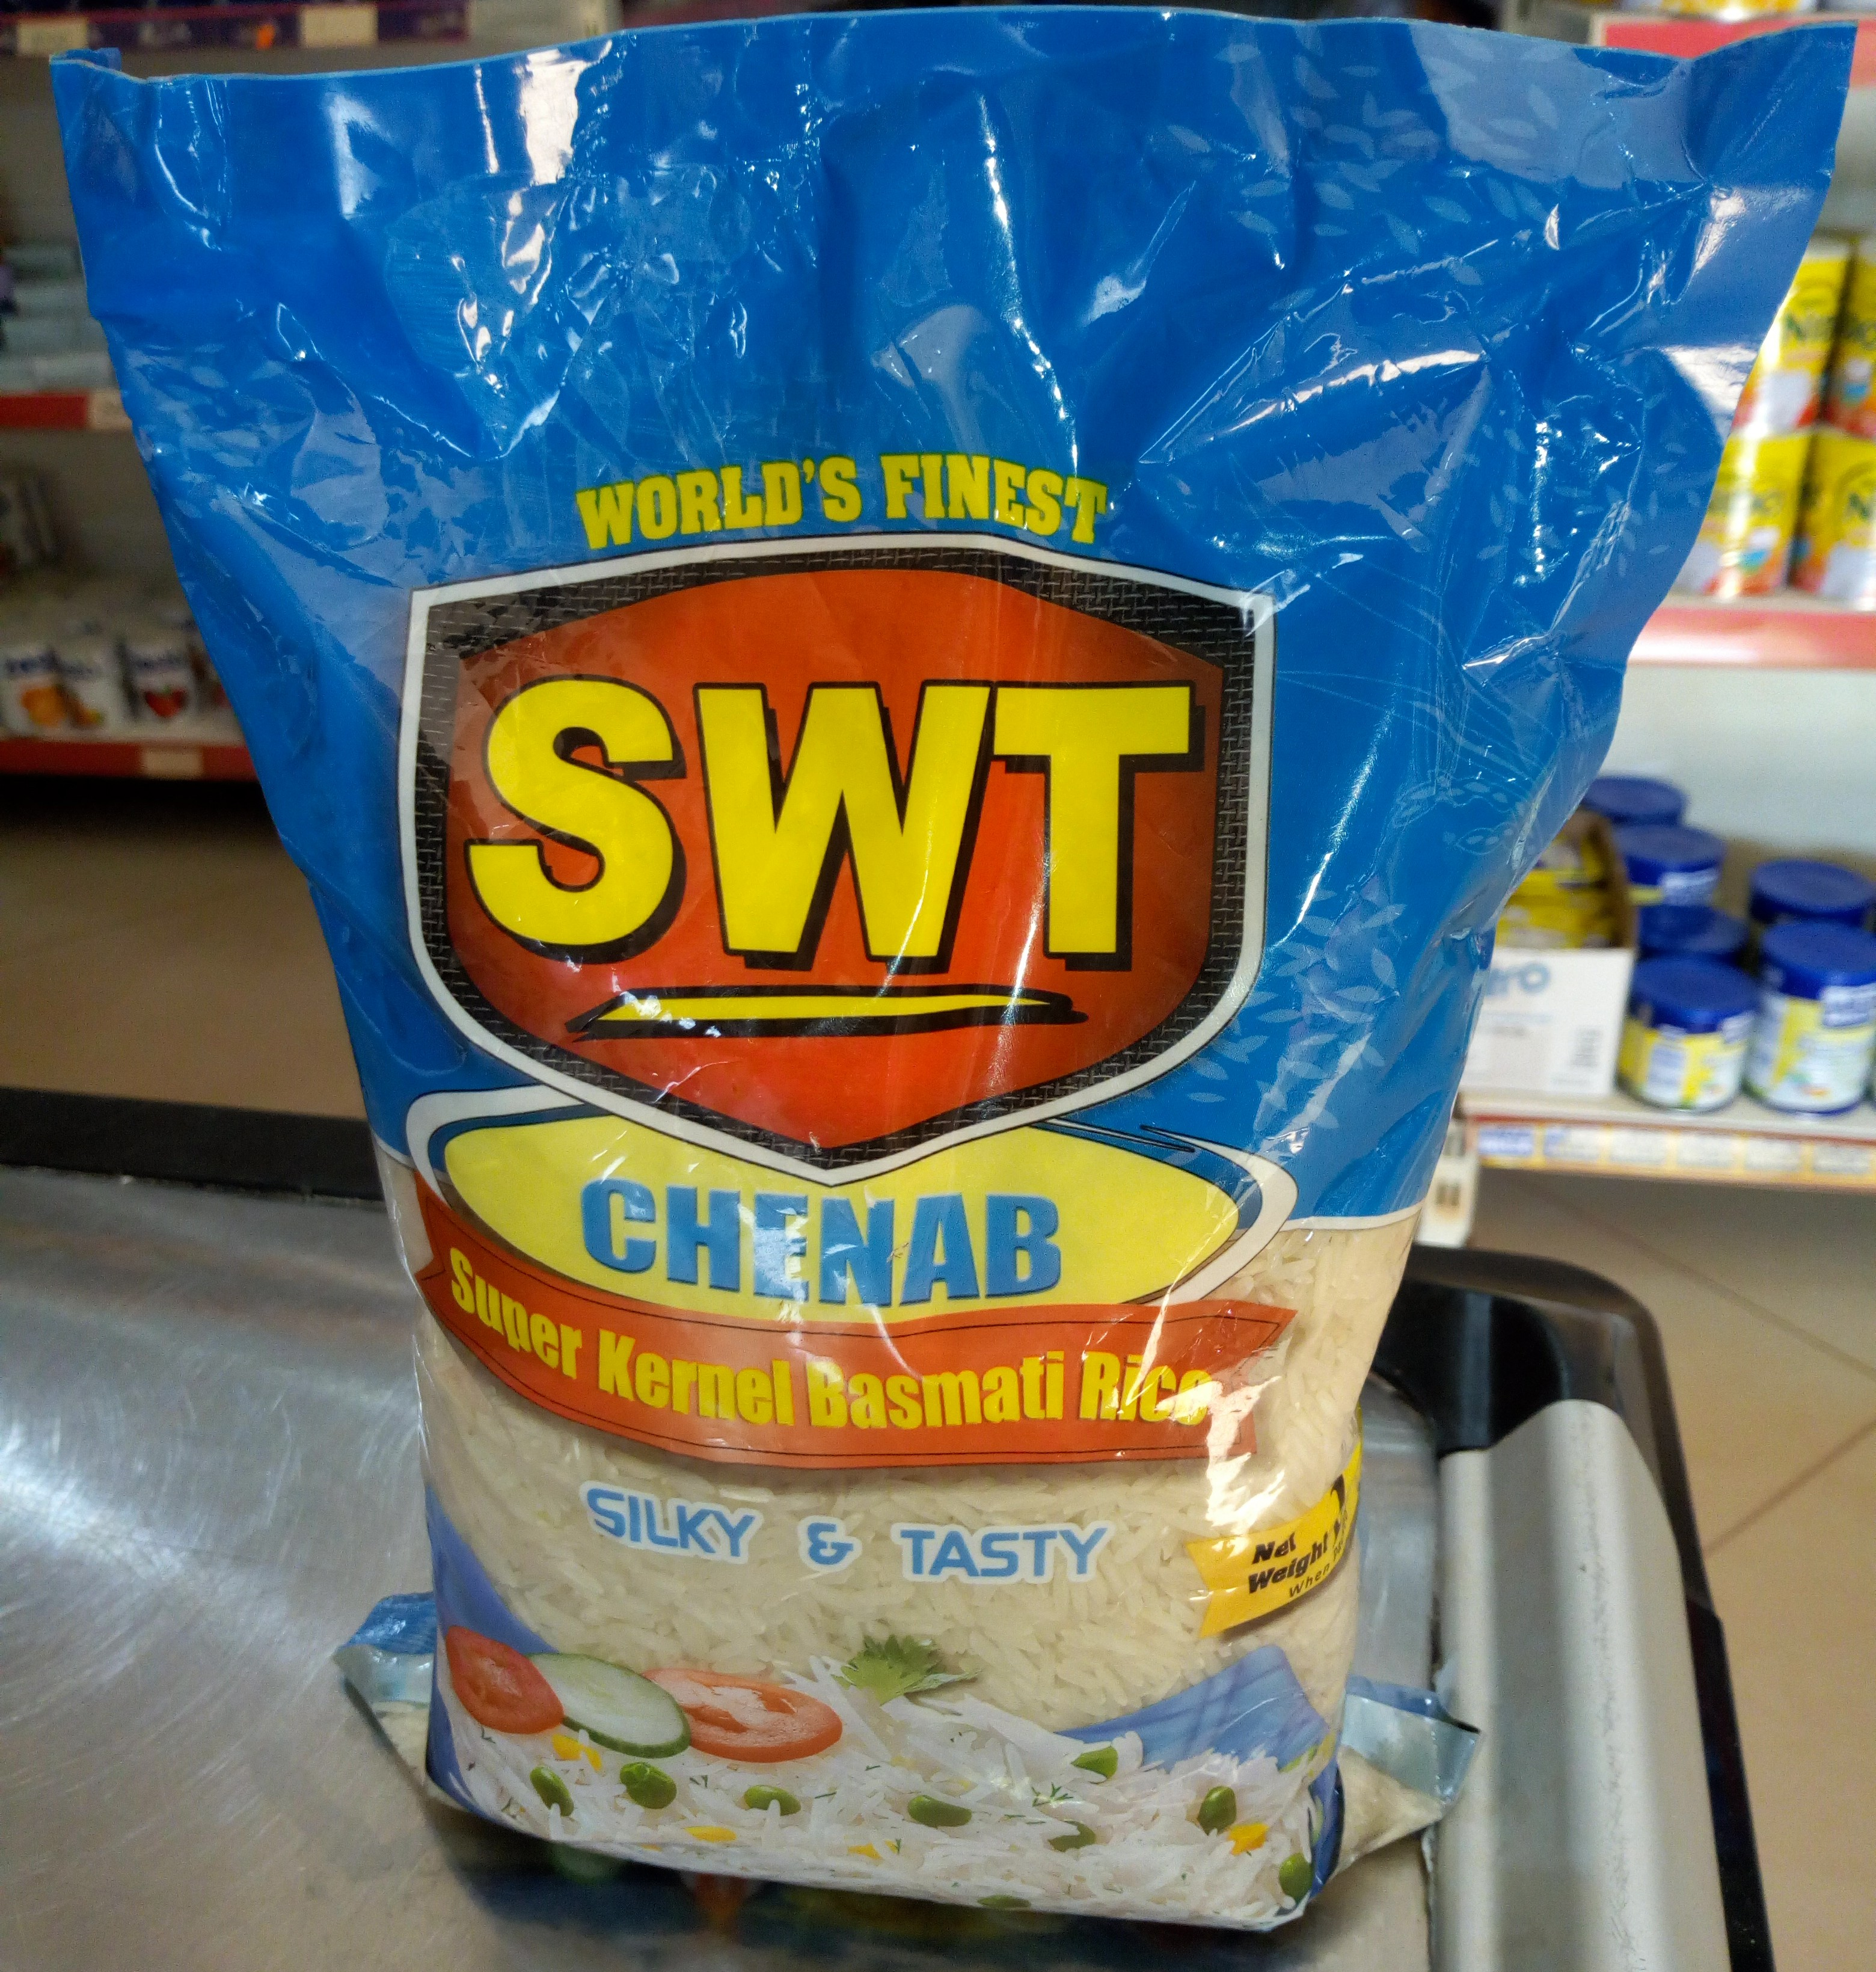 SWT rice produce (1Kg)